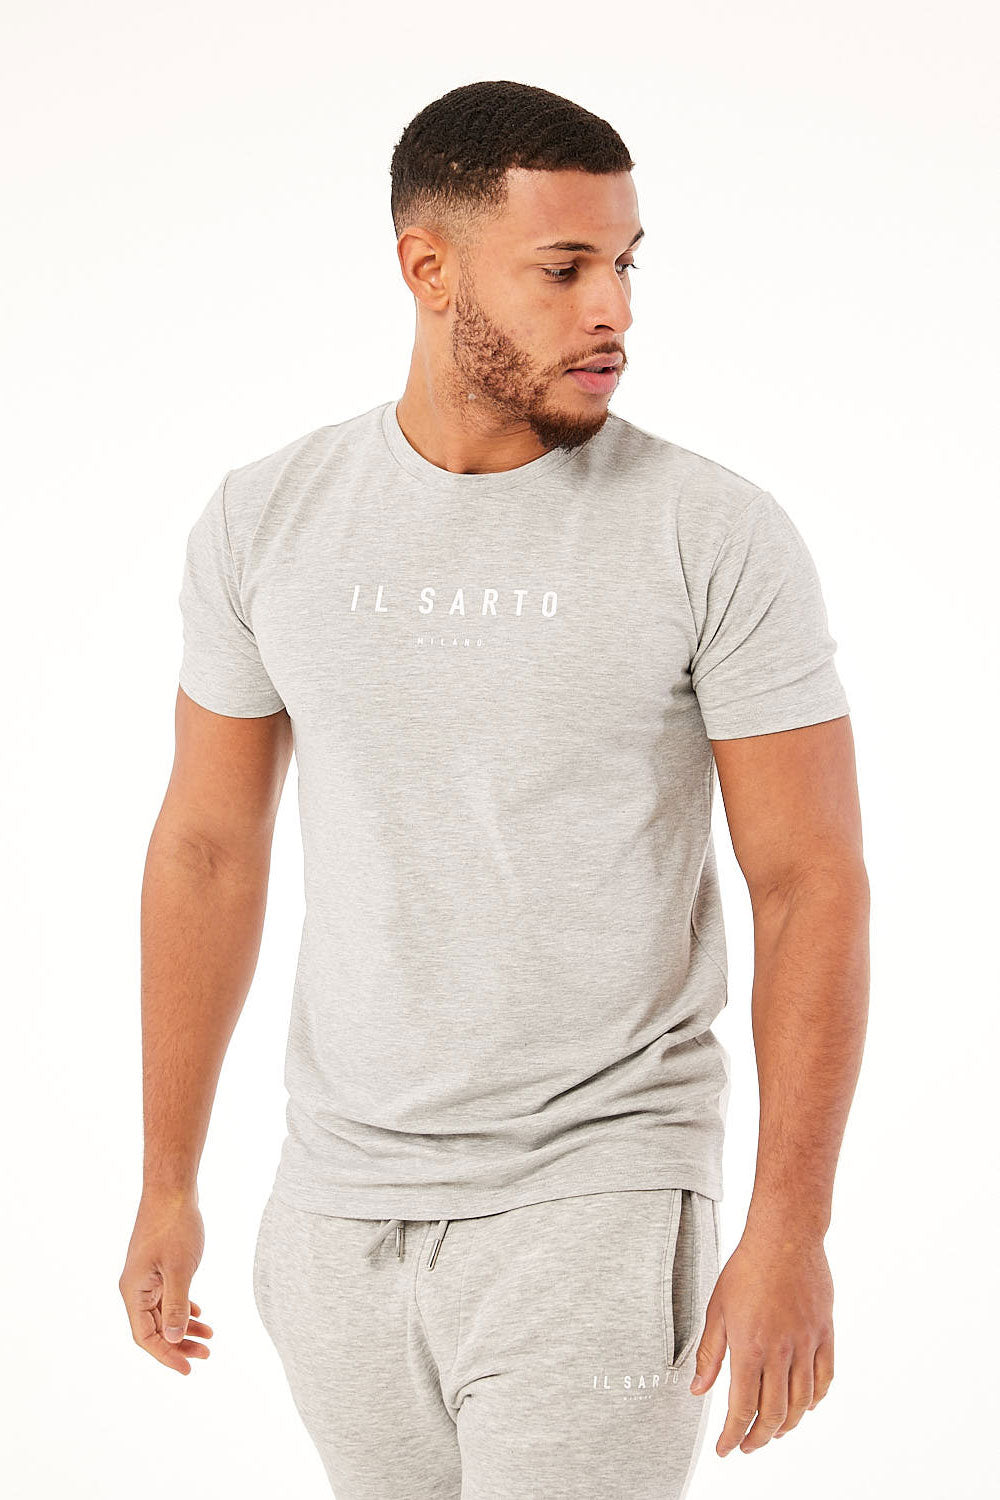 Il Sarto Essential Log Tee - Grey Marl